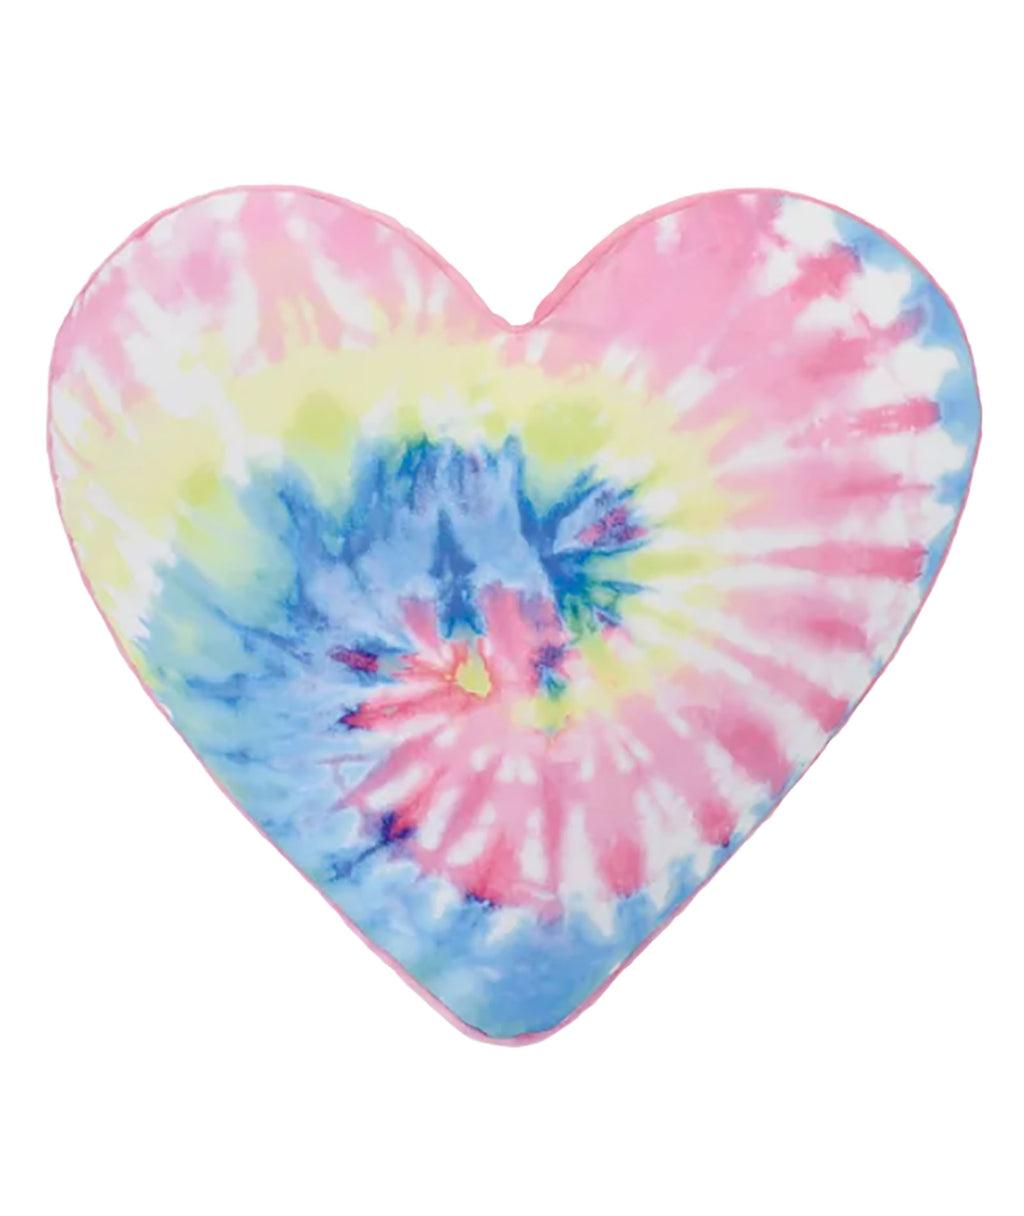 iScream Tie Dye Heart Pillow